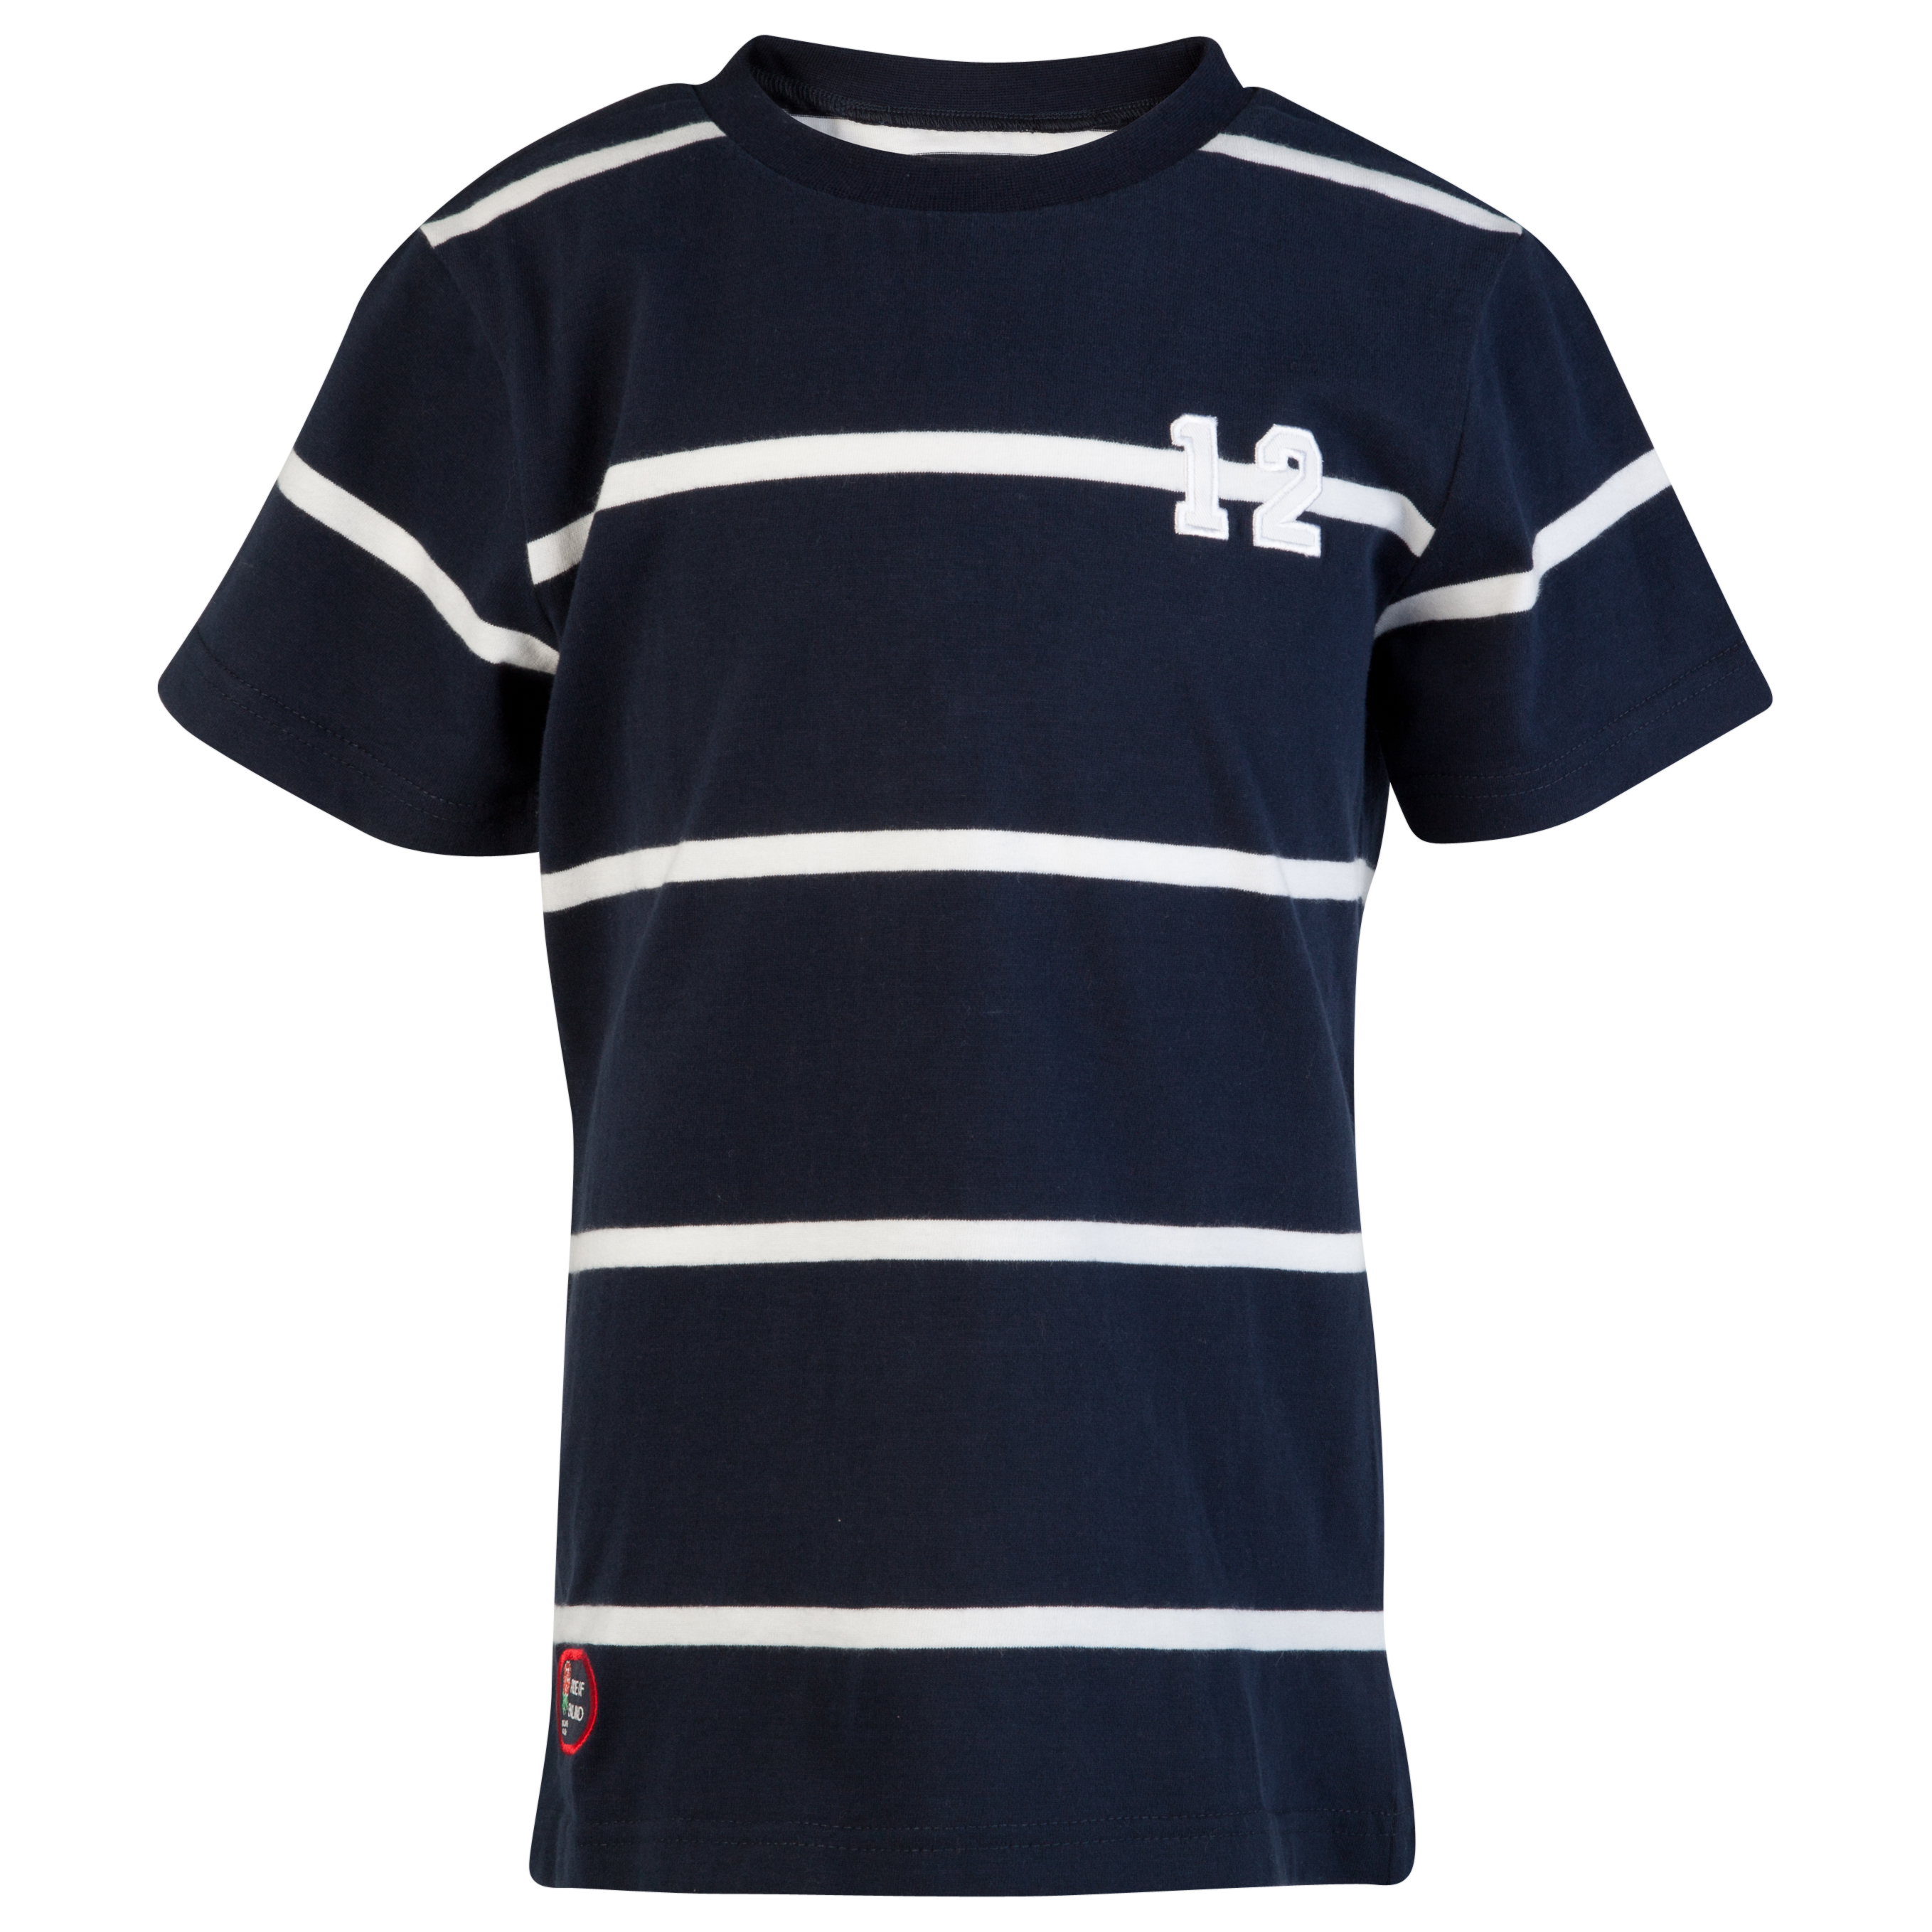 England Rugby Classic Collection Striped T-Shirt - Infant Boys